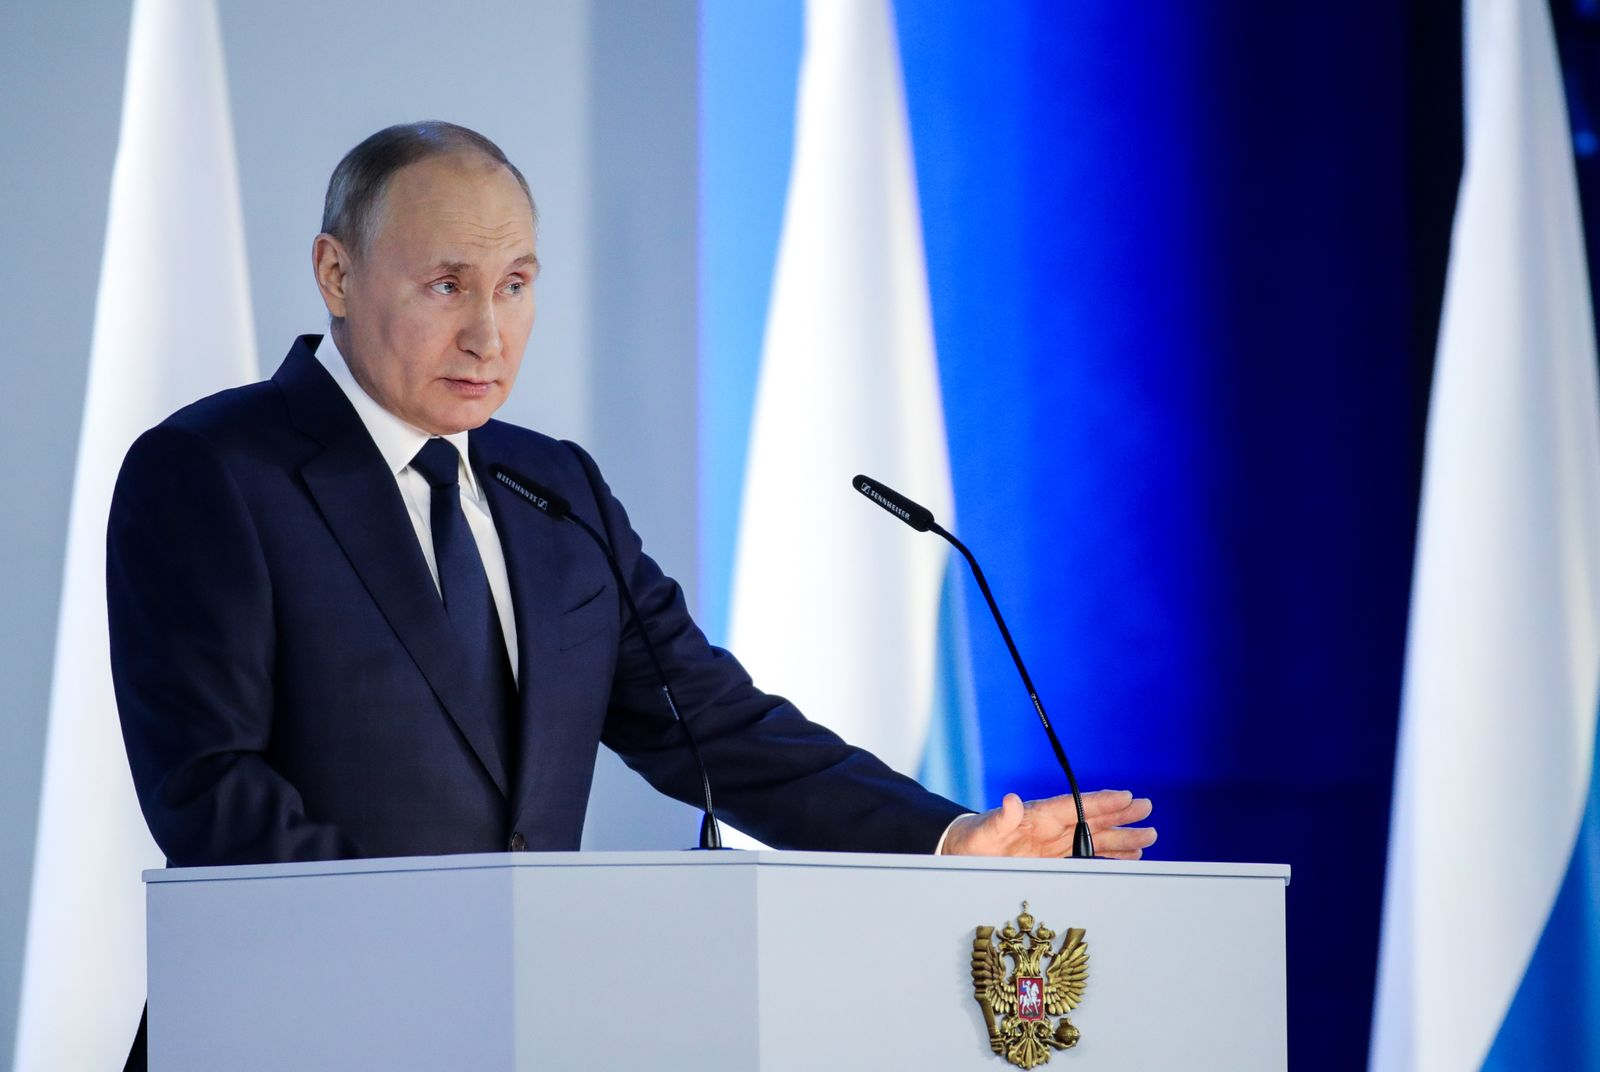 Russia: President Putin delivers annual address to Federal Assembly of Russia